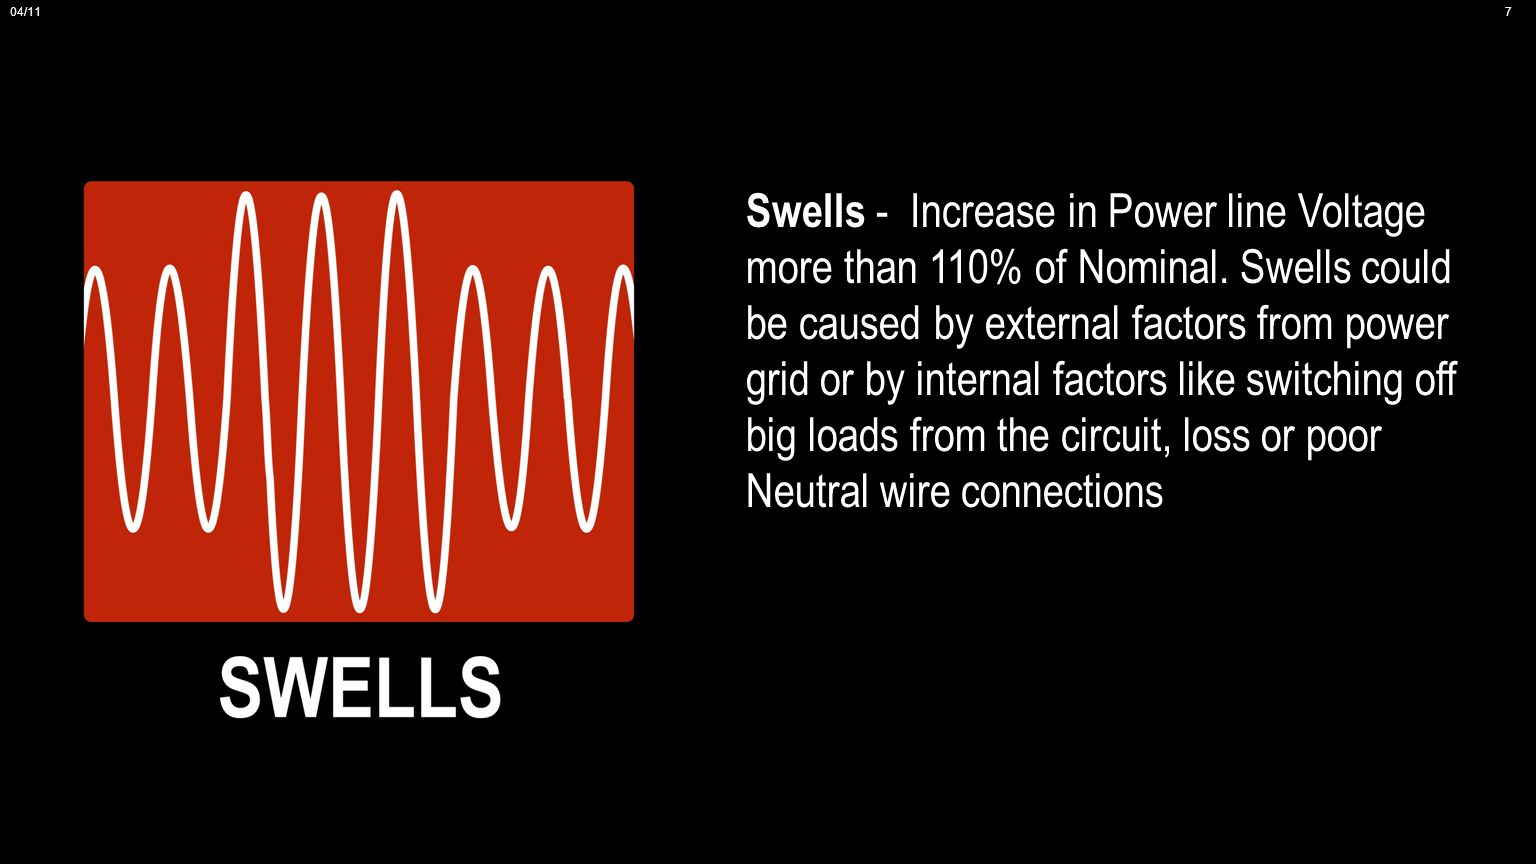 Swells - Increase in Power line Voltage more than 110% of Nominal.